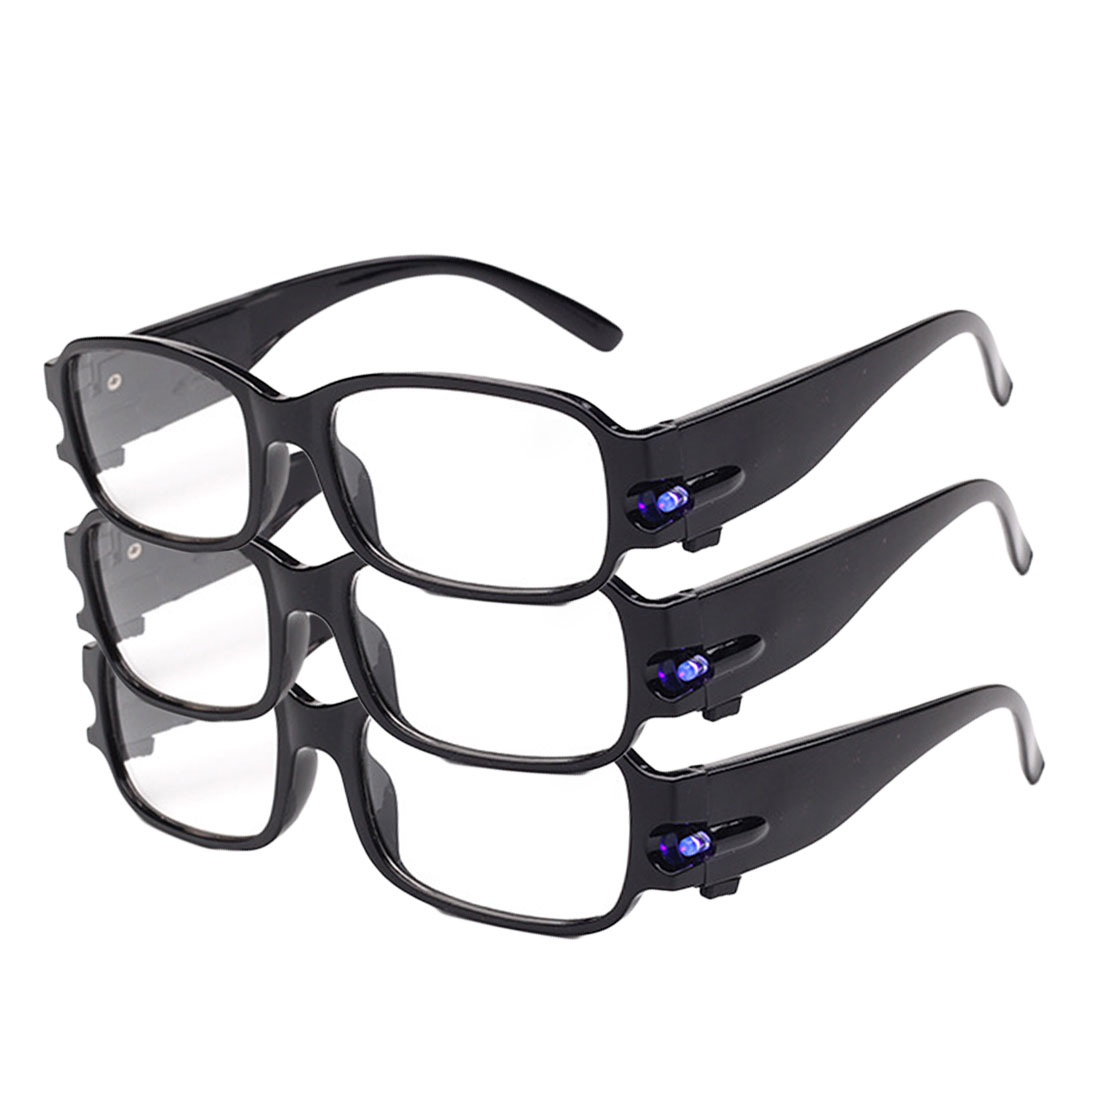 100/350/400 Degree Vision Glasses Magnifier Magnifying Eyewear Reading Glasses Portable Gift For Parents